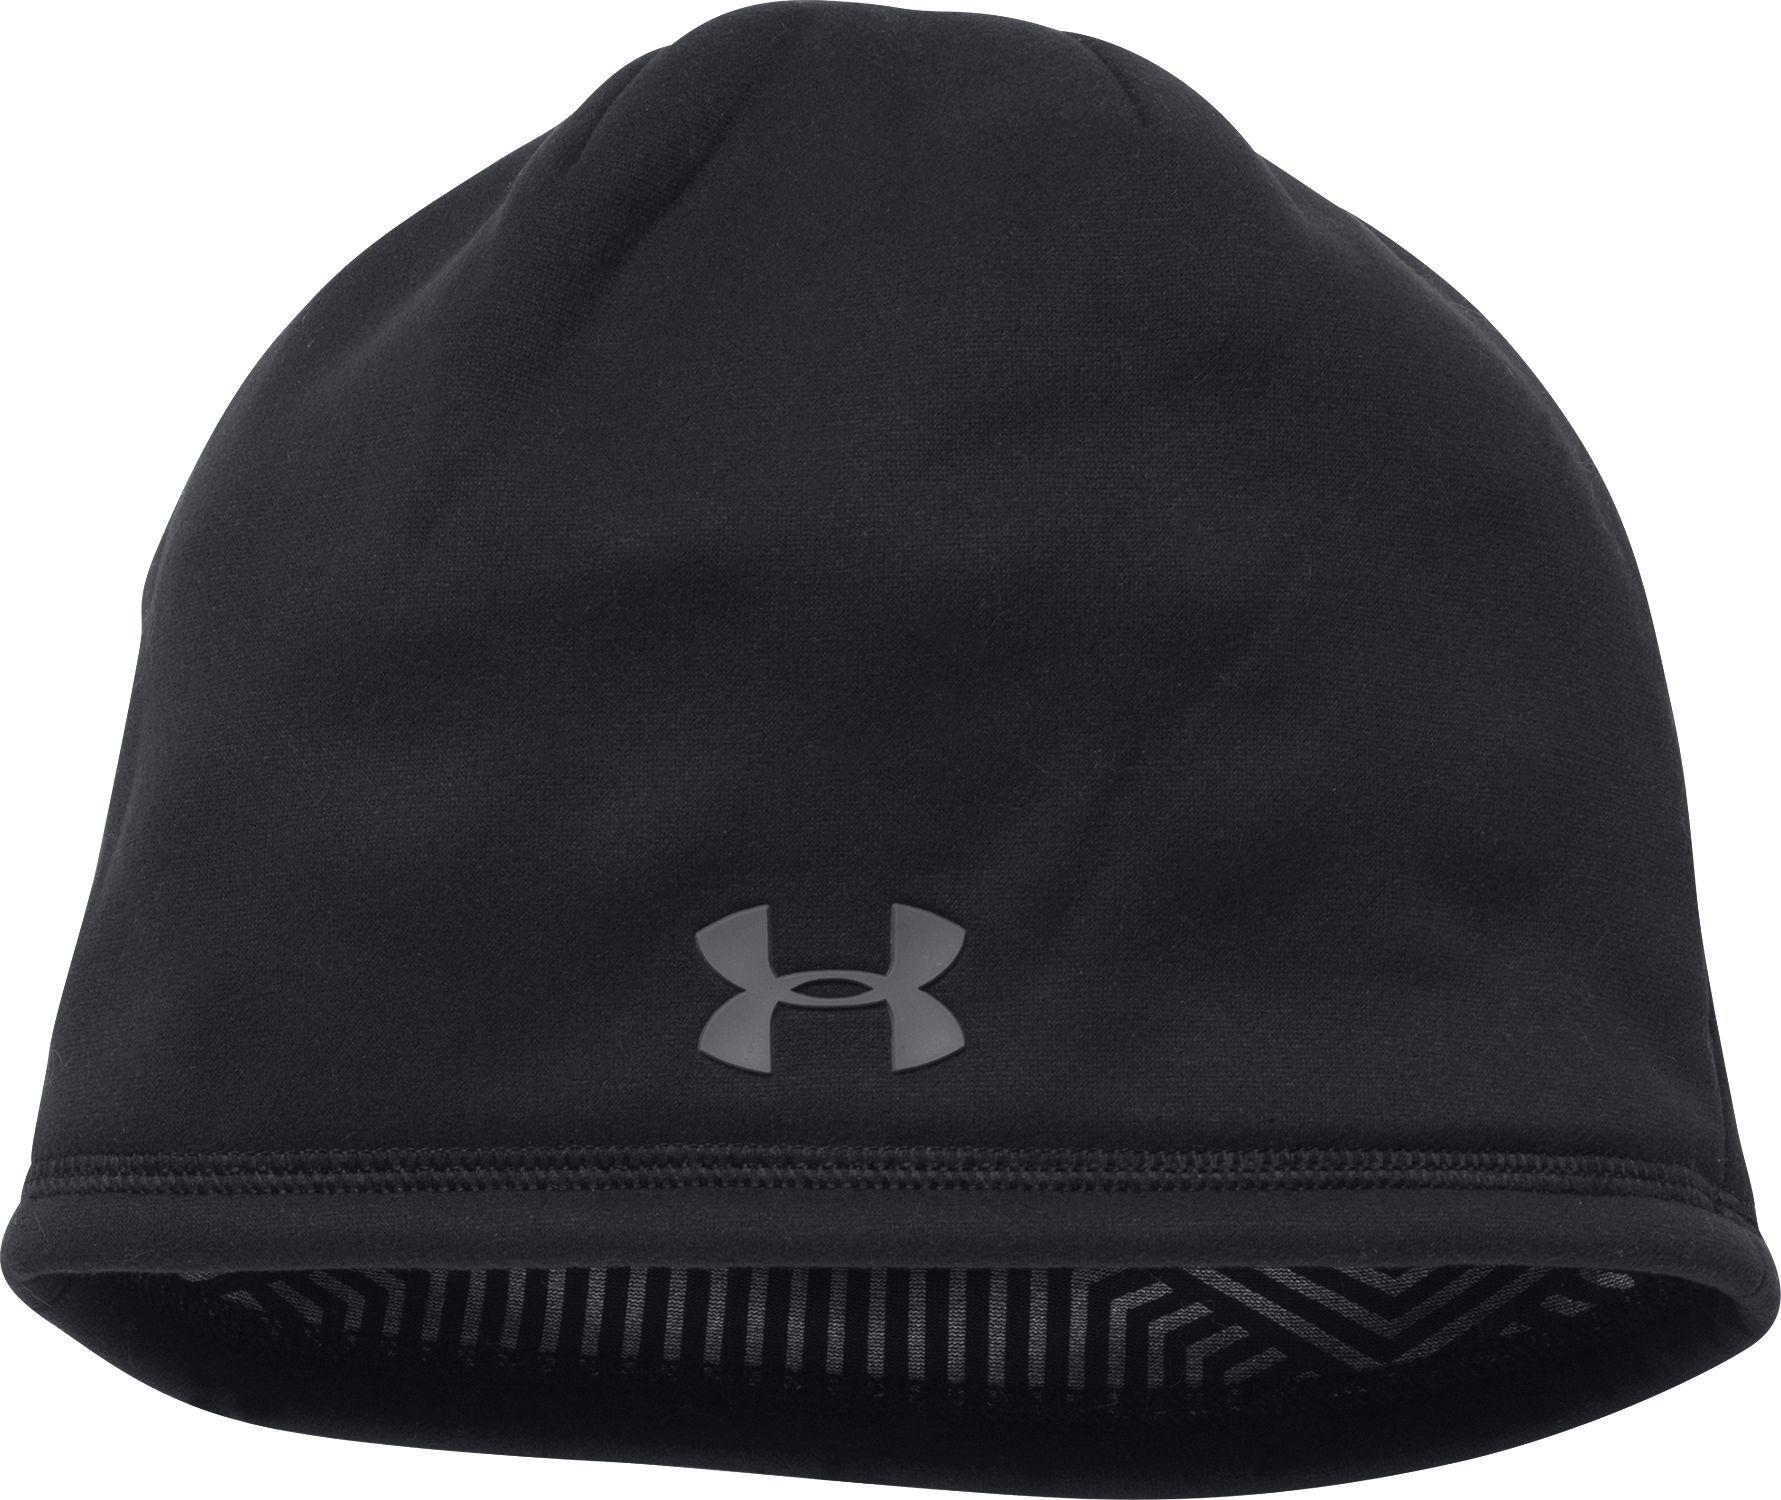 e346115aa40 ... australia under armour black coldgear infrared elements storm 2.0 beanie  for men lyst 08bc7 f664f